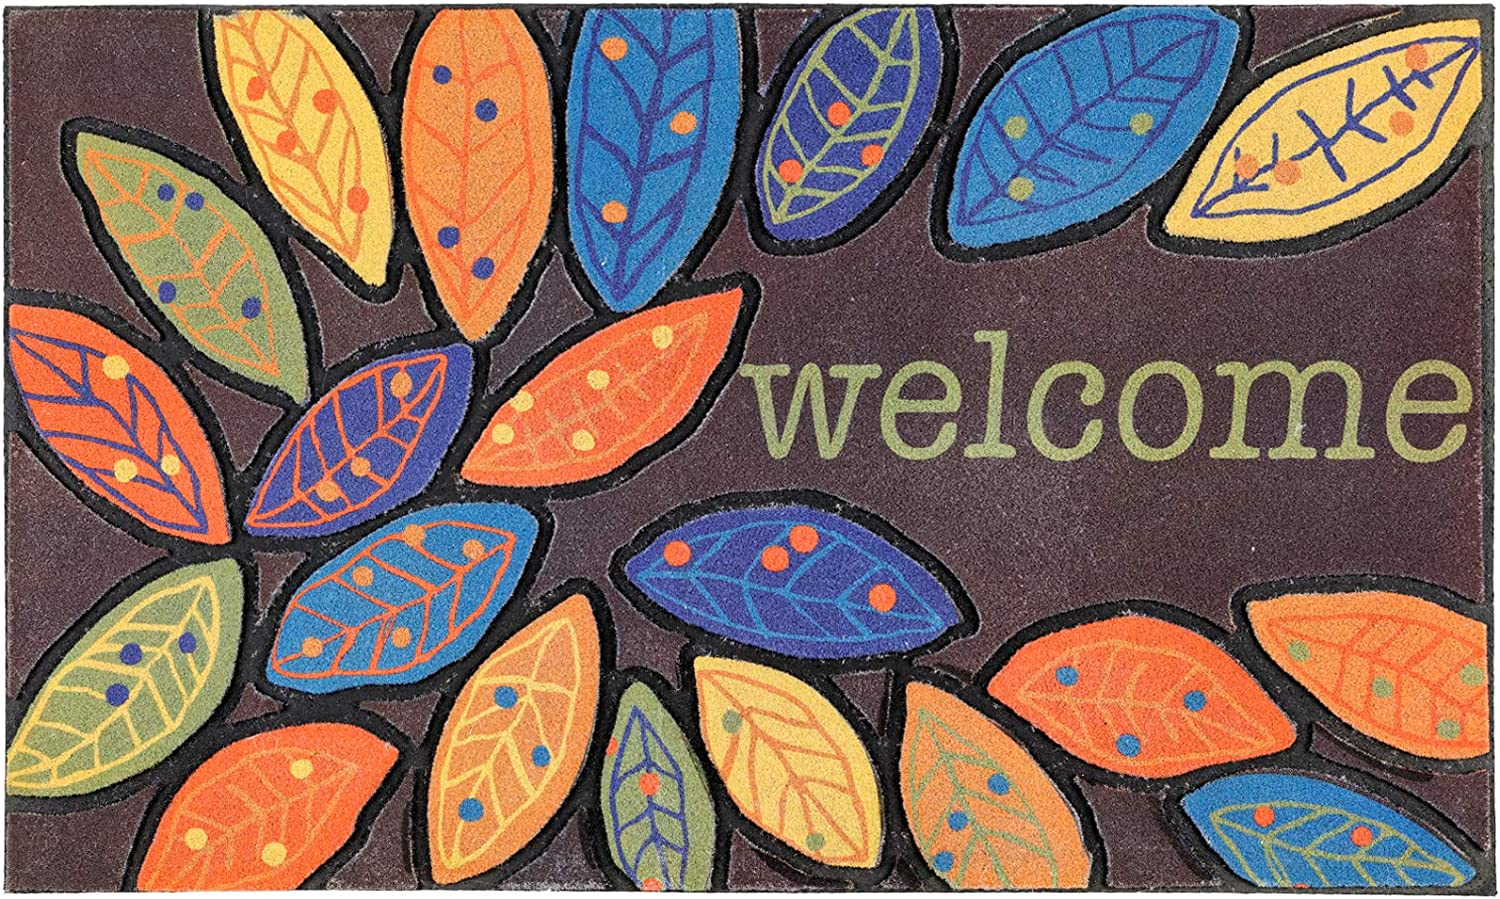 CHICHIC Door Mat Welcome Mat Front Door Mat Outdoor for Home Entrance Outdoor Mat for Outside Entry Way Doormat Entry Rugs, Heavy Duty Non Slip Rubber Back Low Profile, 18 x 30 Inch, Leaves